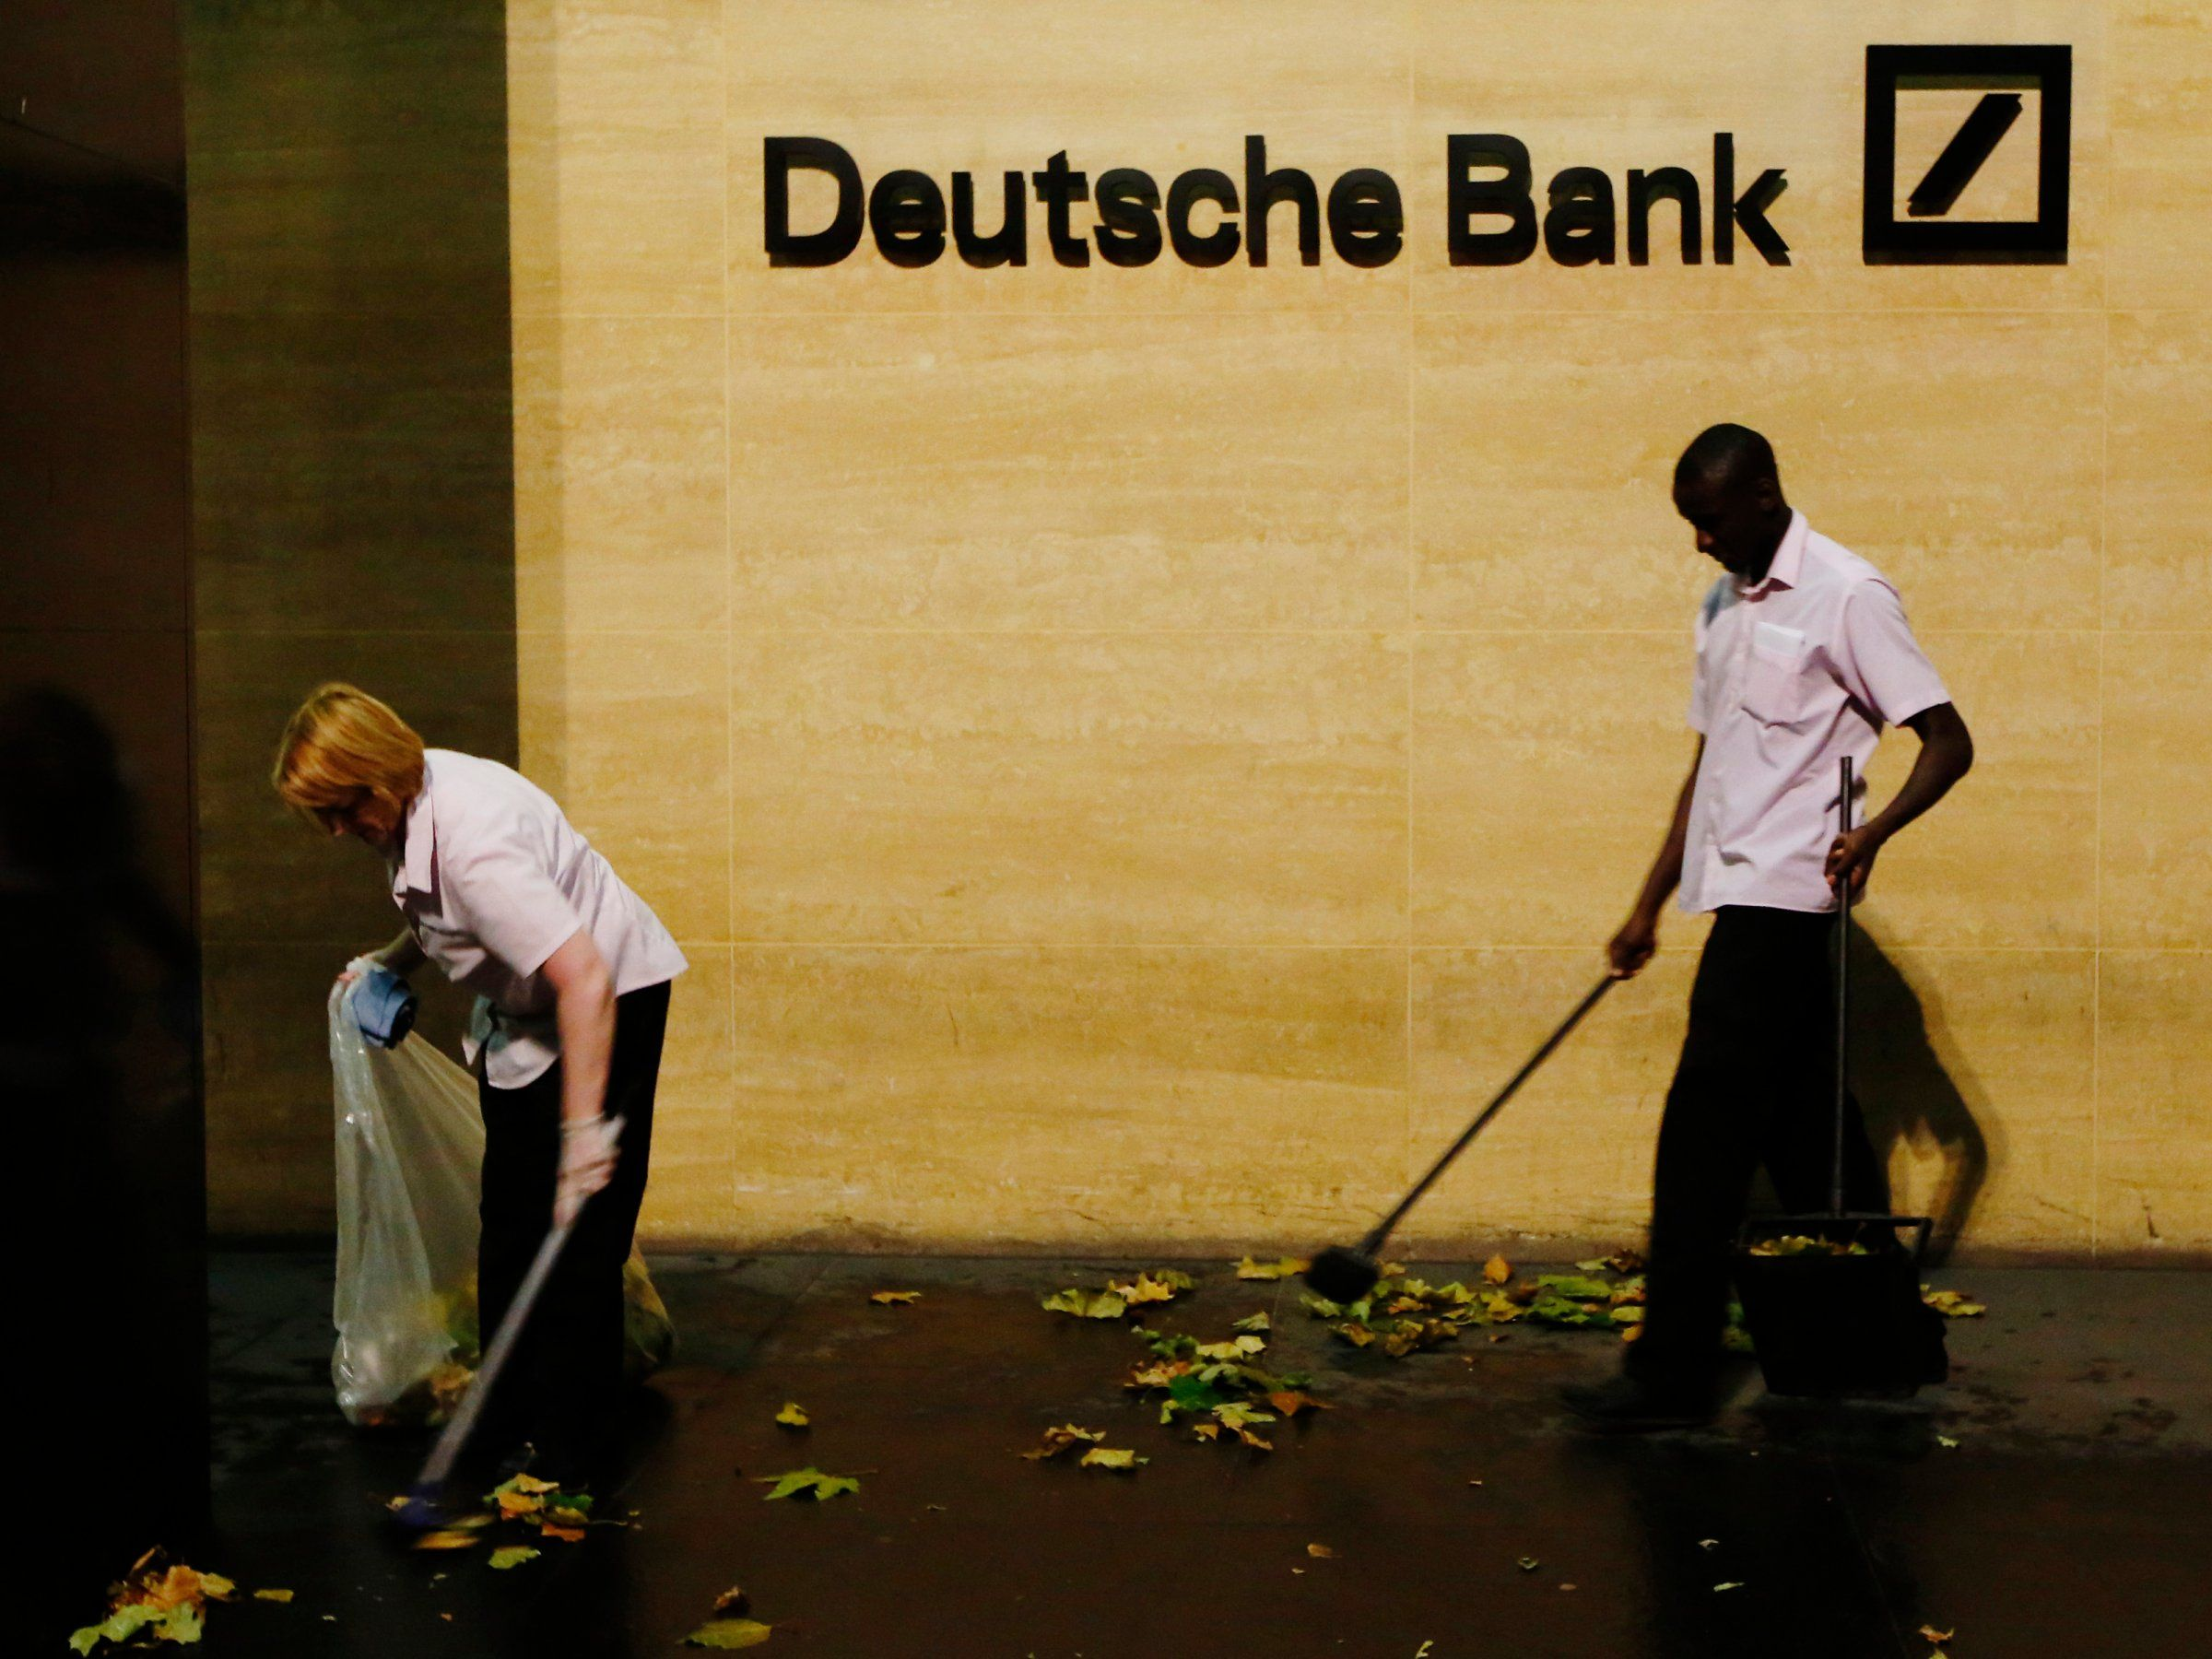 Deutsche Bank is hiring 25 more new analysts this year